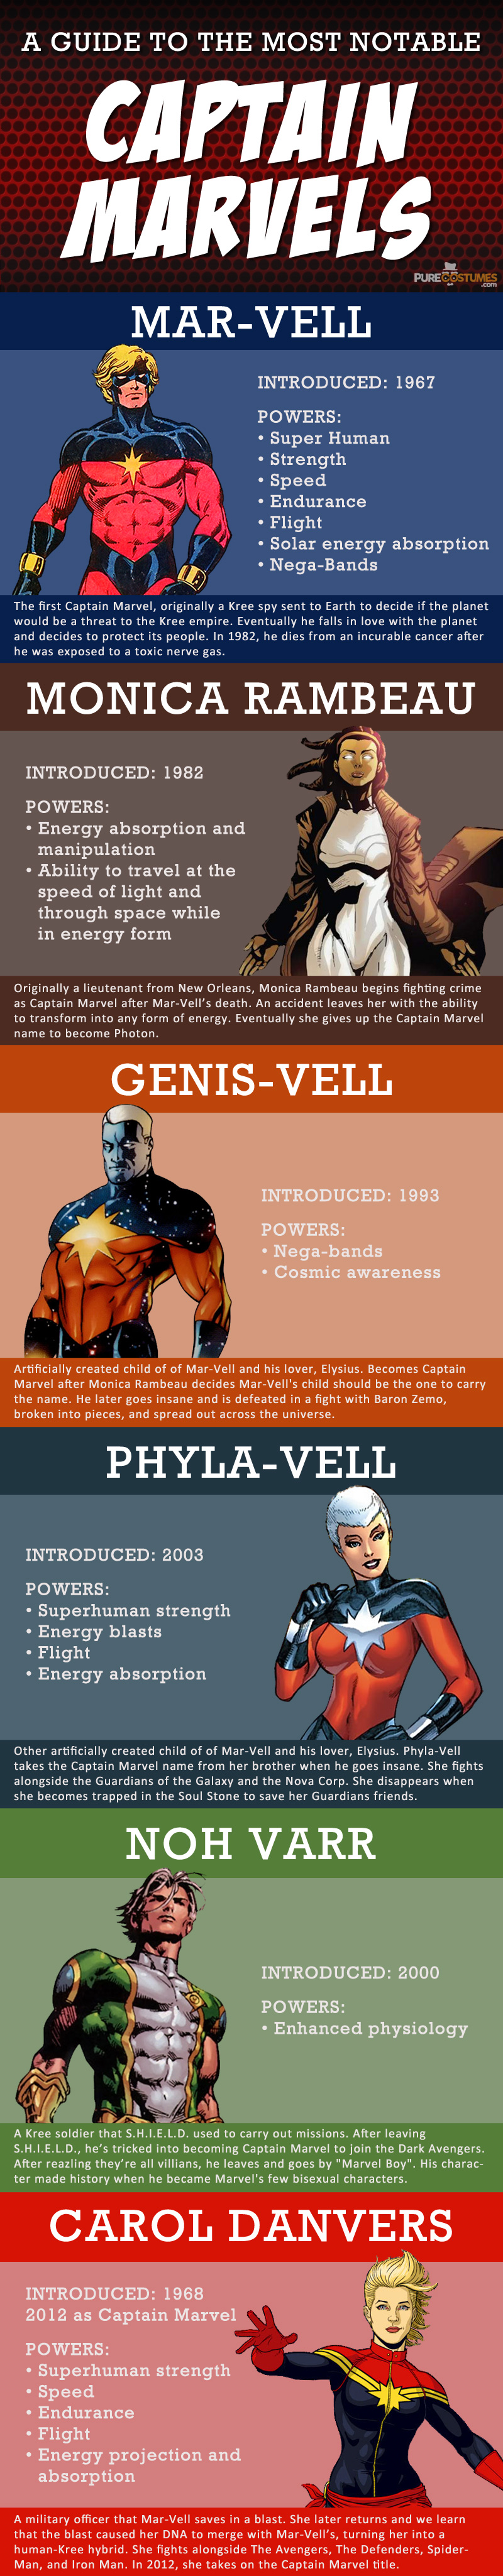 infographic A Guide to the Most Notable Captain Marvels info-captain-marvels-guide